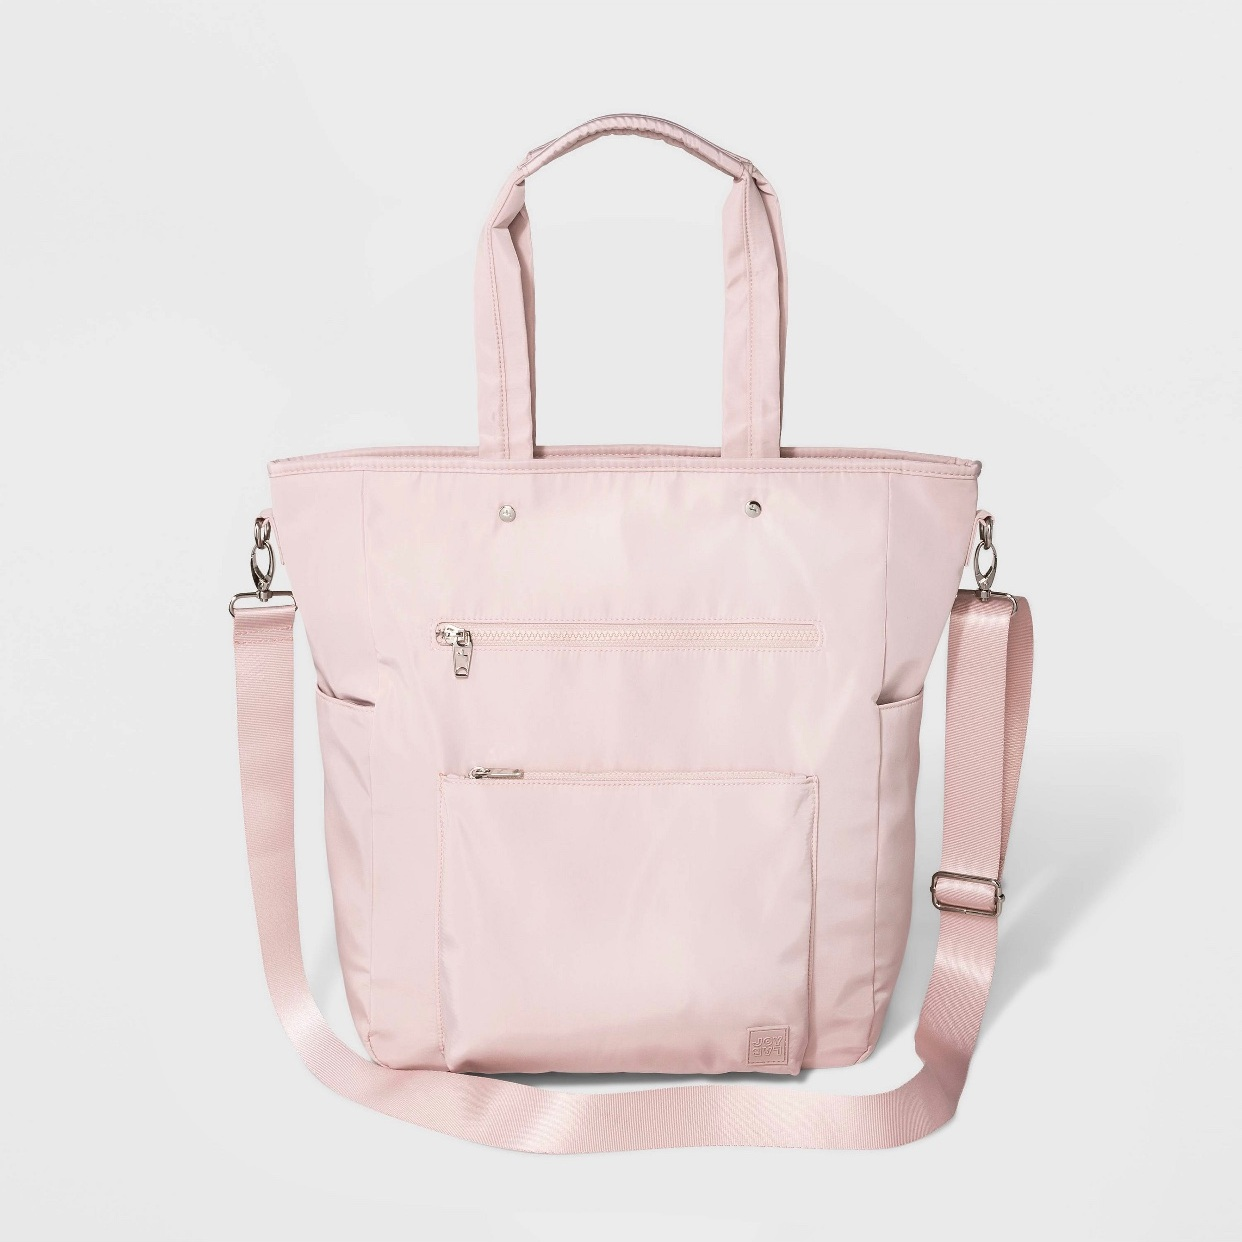 - This bag is also a backpack and cross body! The color is gorgeous too!Find it here.